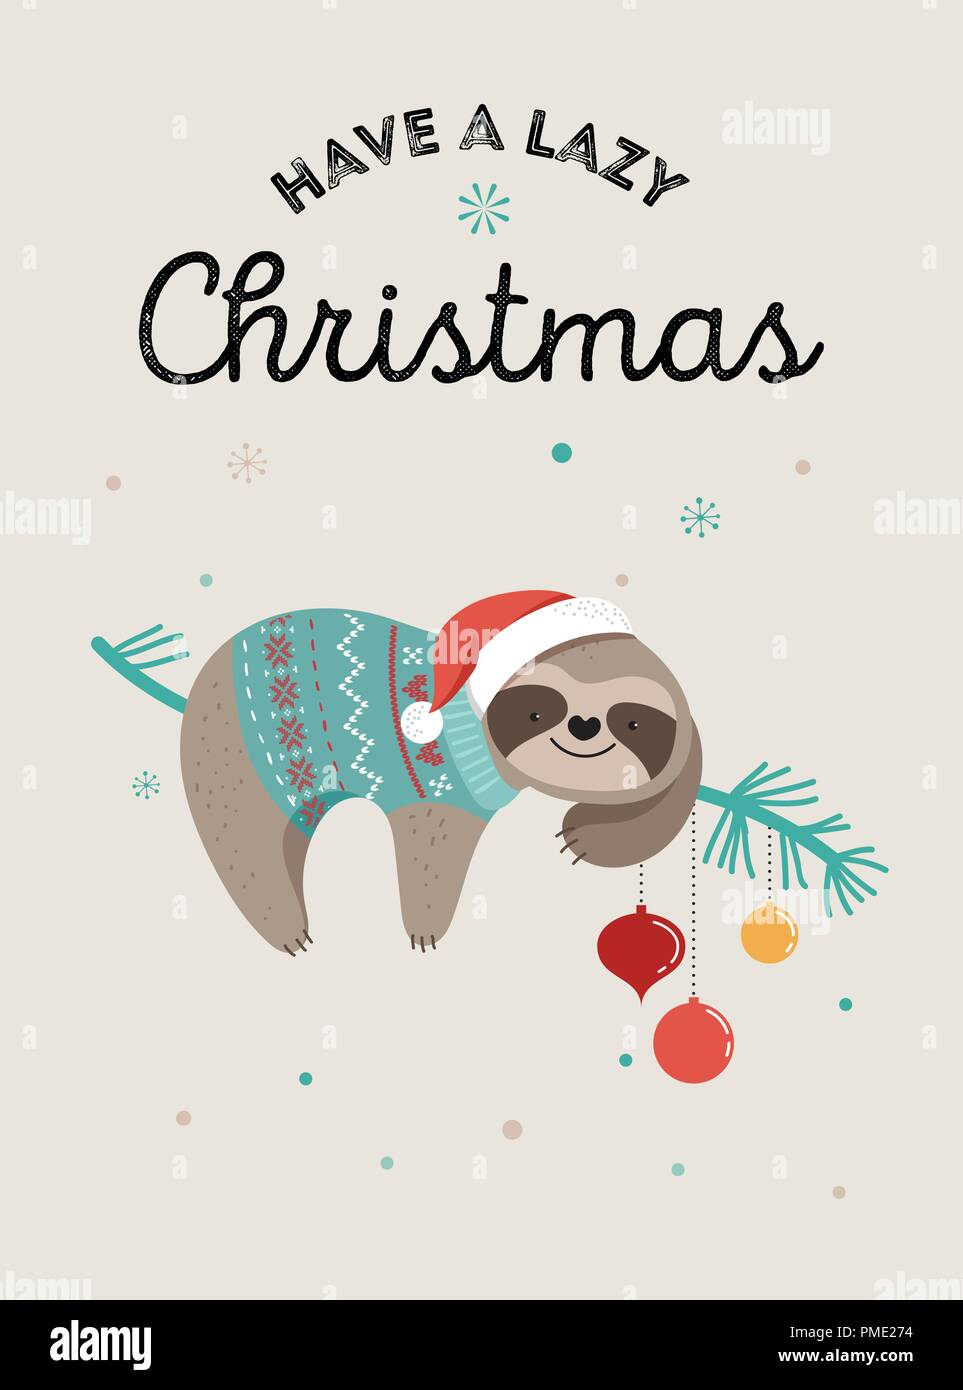 Christmas Illustrations.Cute Sloths Funny Christmas Illustrations With Santa Claus